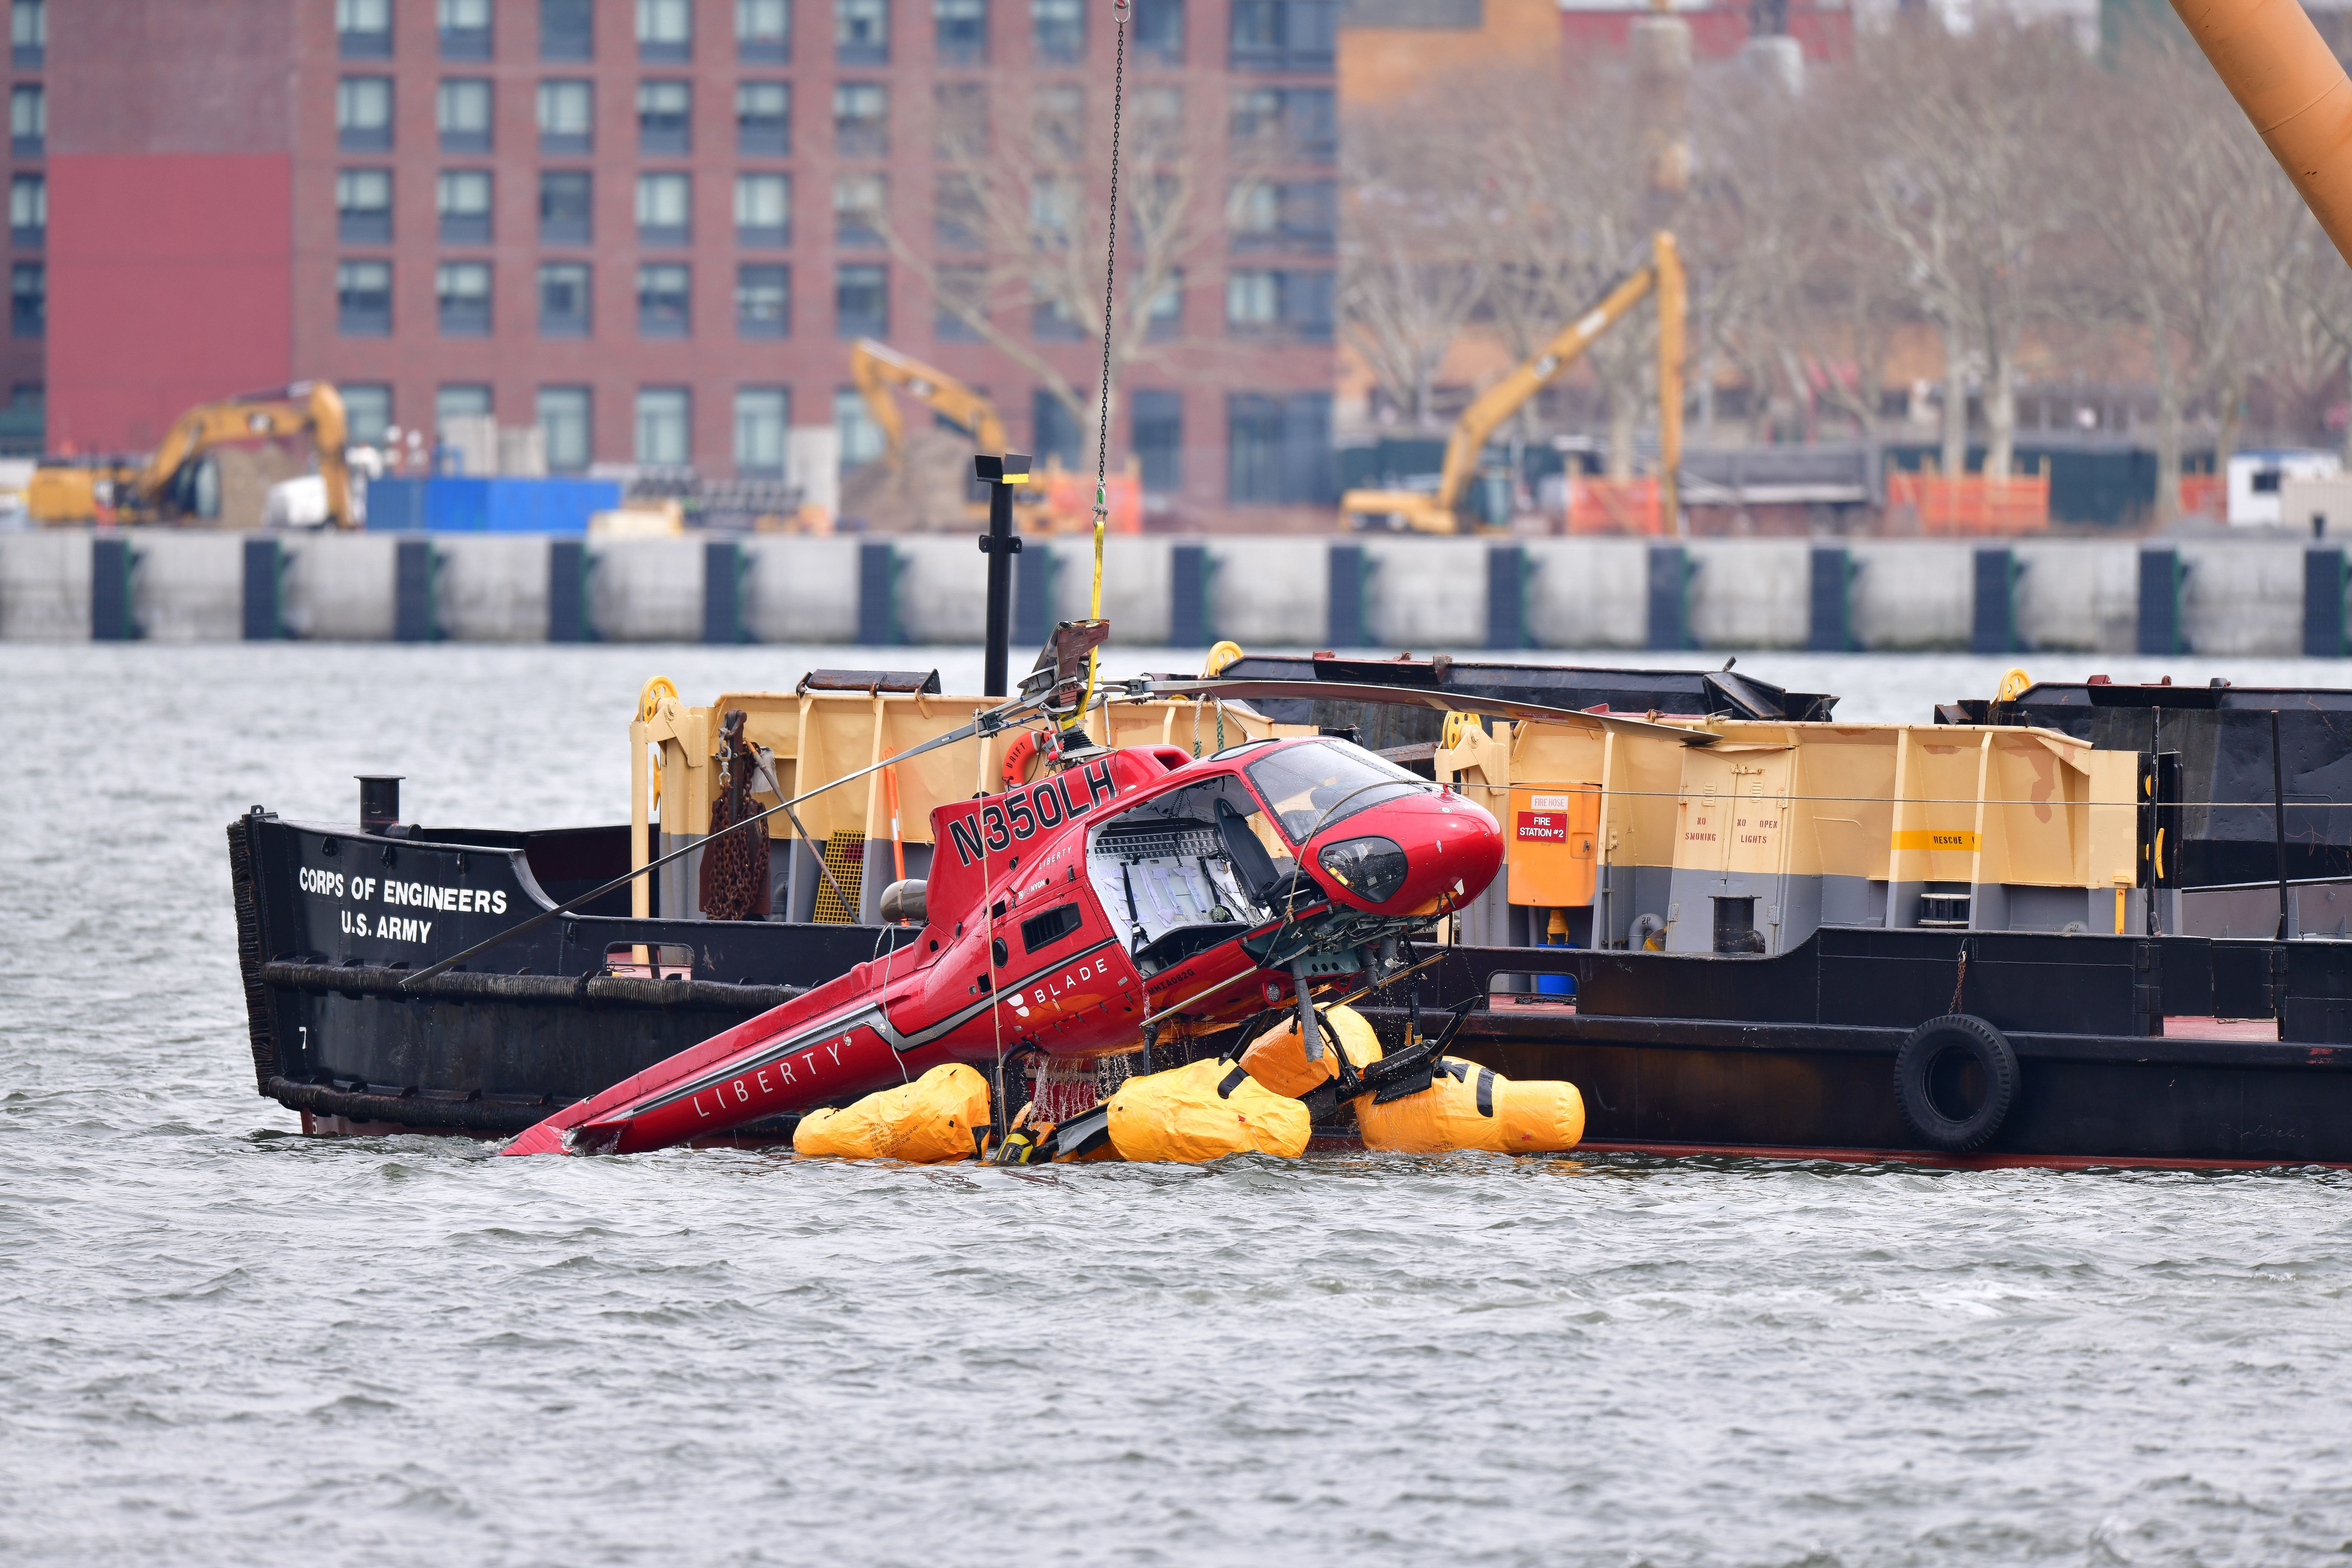 5ac99dca1f0000280616c9b4?ops=1910_1000 pilots warned company of harnesses before deadly new york helicopter